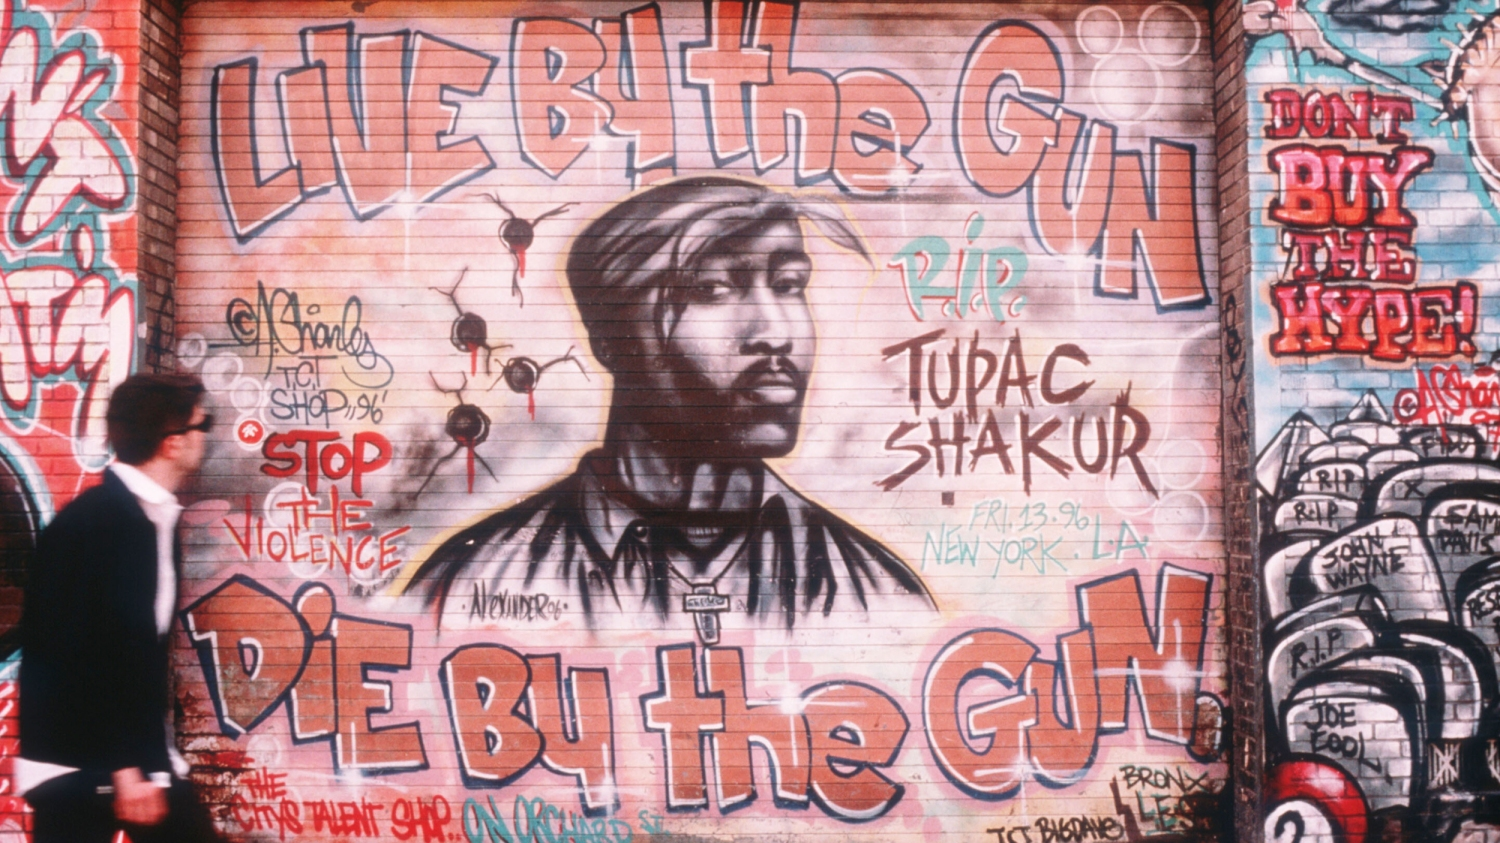 The murder of Tupac Shakur is a tragedy — but the why is not